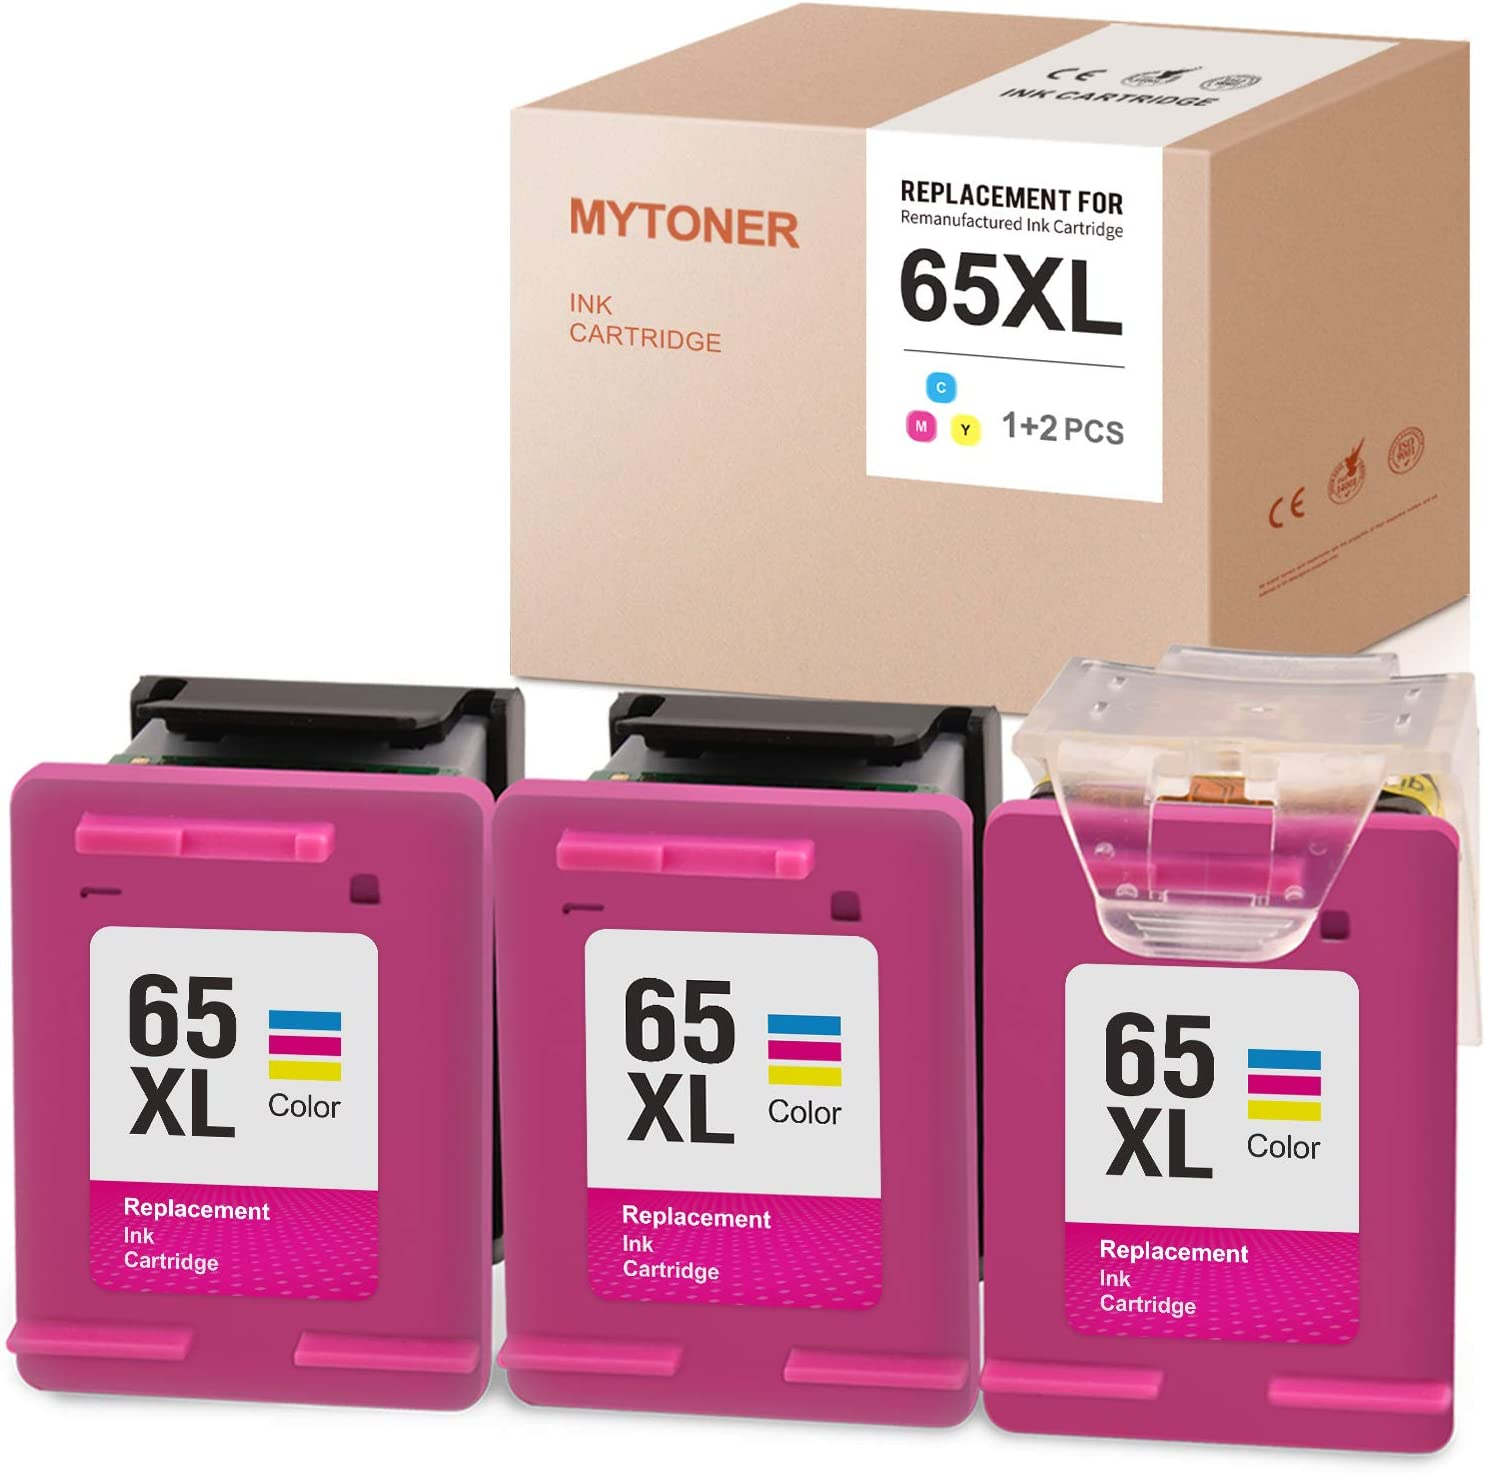 MYTONER Remanufactured Ink Cartridge Replacement for HP 65XL 65 XL N9K03AN Recharge Design for Envy 5055 5052 5010 DeskJet 3752 2662 3755 2652 2655 3758 3720 3722 2624 (Print Head+Cartridges, 3-Color)